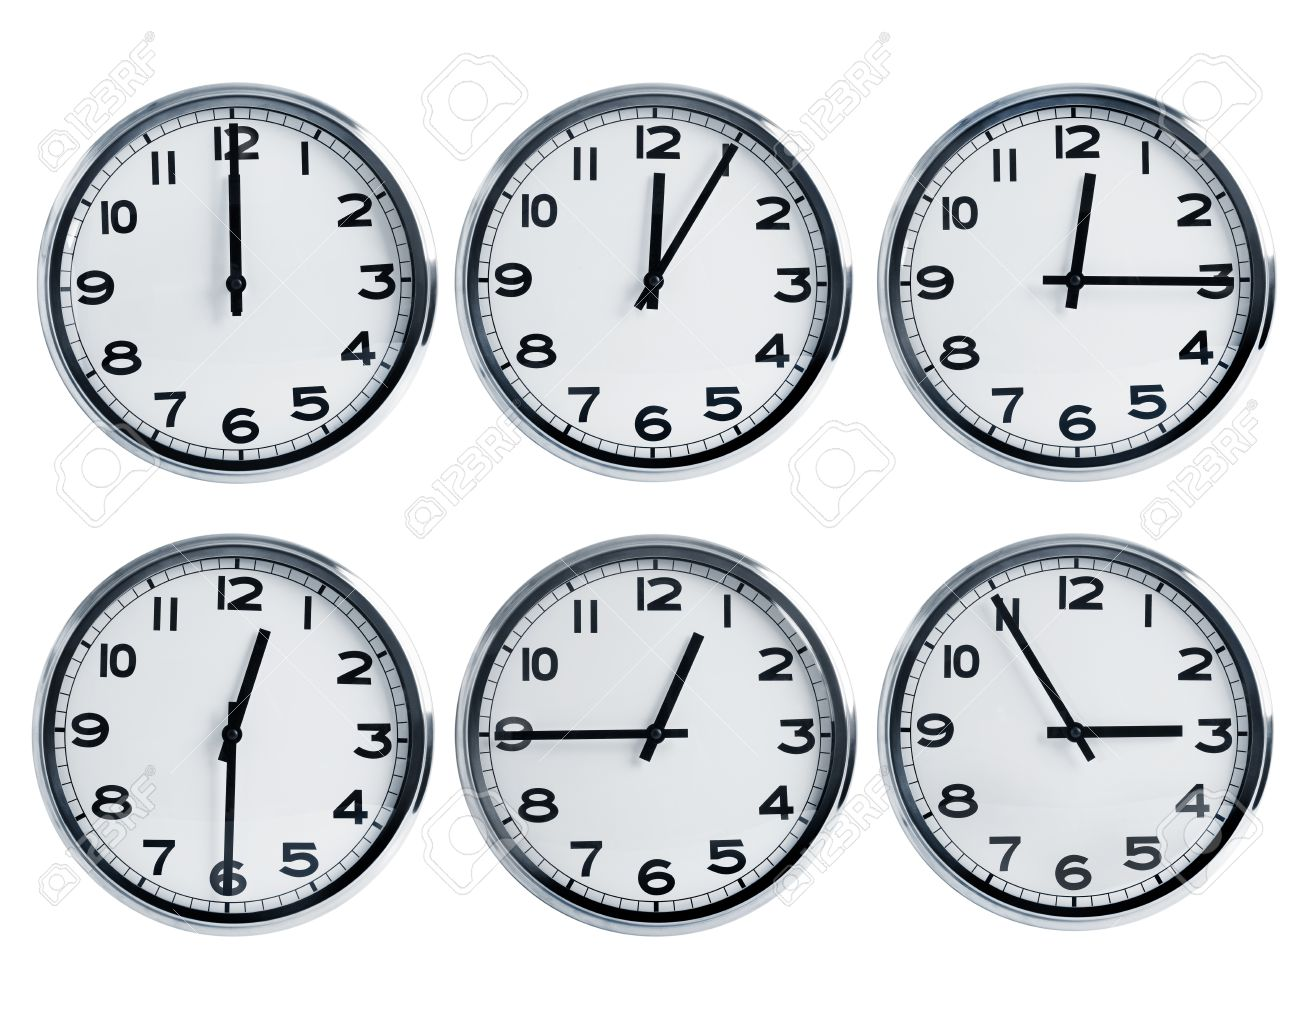 Wall clocks with different time on a dial